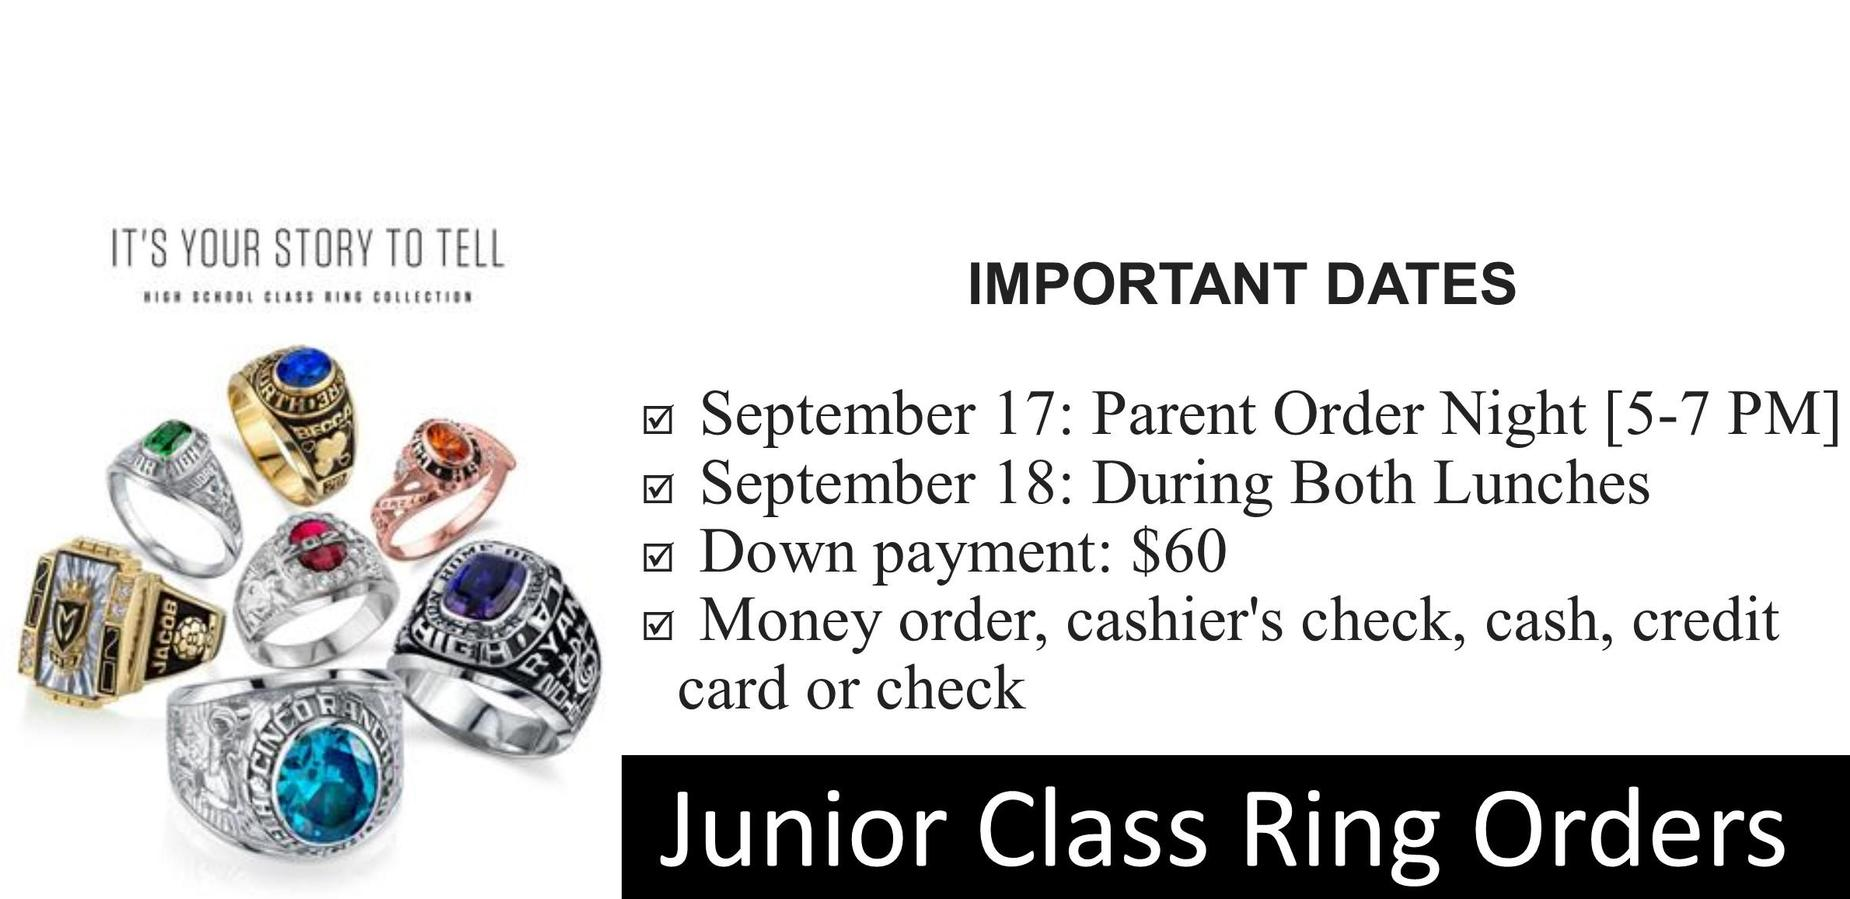 Junior Class Ring Orders. It's Your story to Tell, High School Class Ring Collection. IMPORTANT DATES. September 17: Parent Order Night [5-7 PM]. September 18: Orders During Both Lunches. Down payment: $60. Pay by Money order, cashier's check, cash, credit card or check.